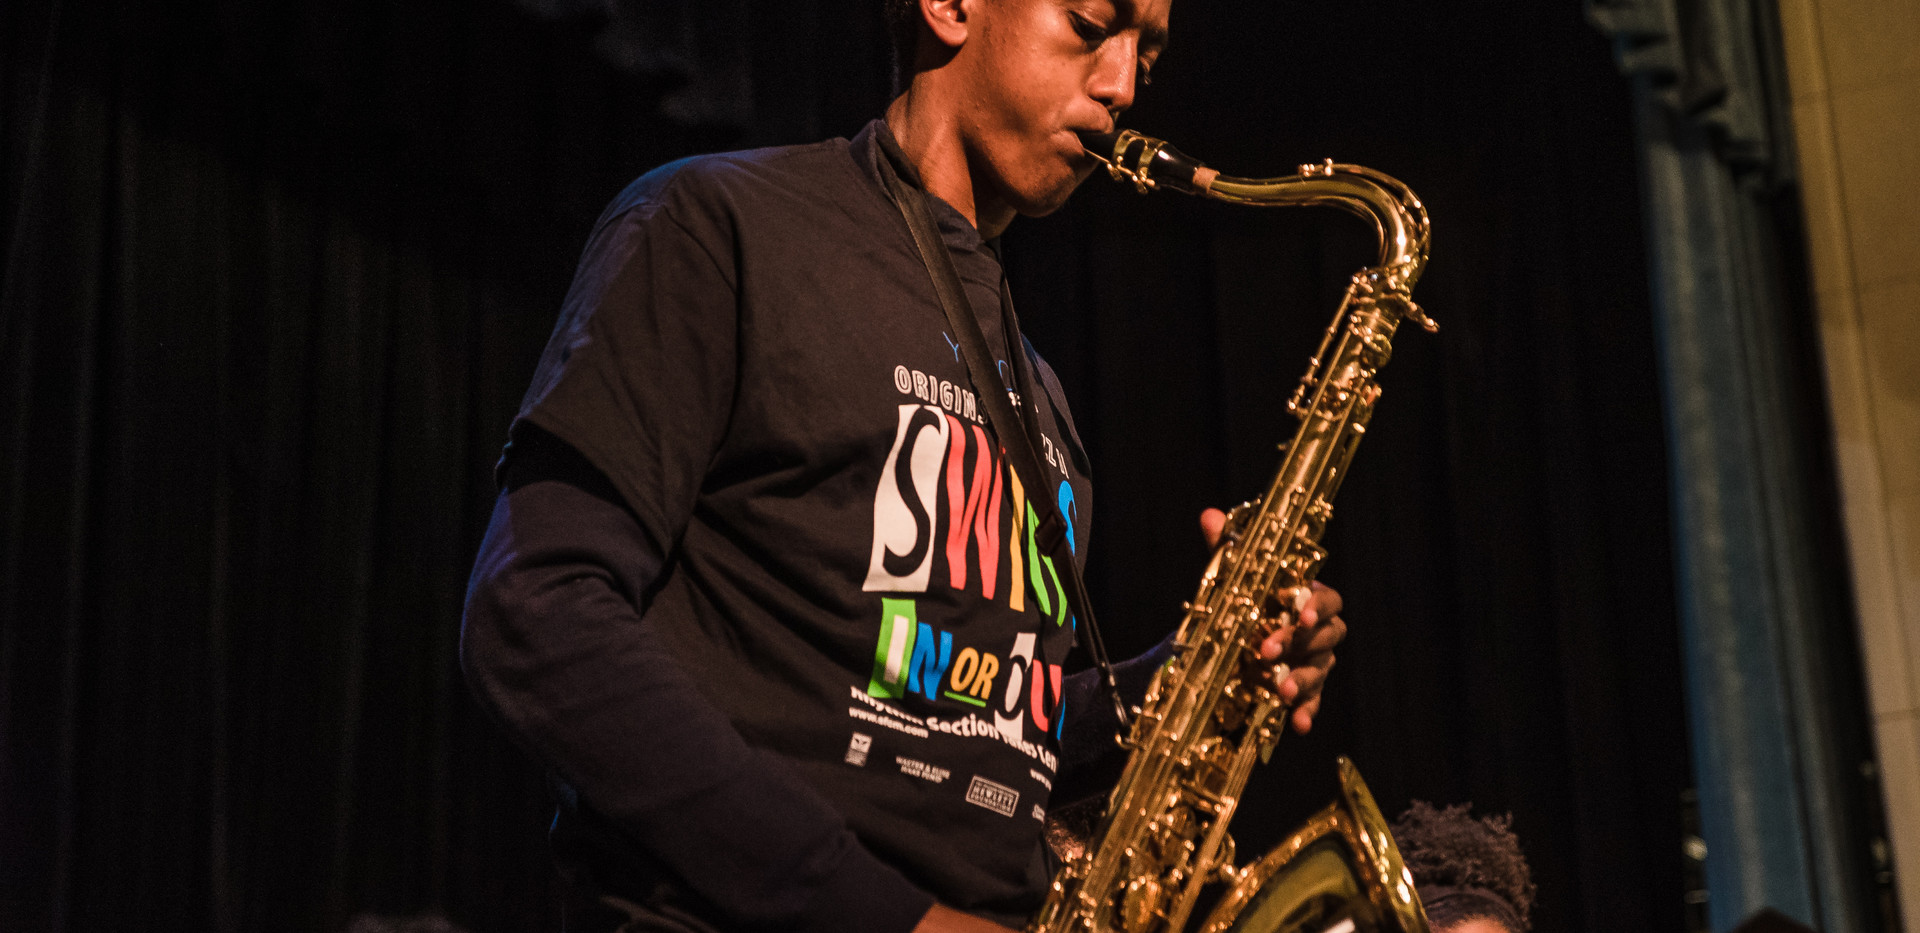 Paulos Thomas later performed on the tenor saxophone during the Jazz Big Band performance.